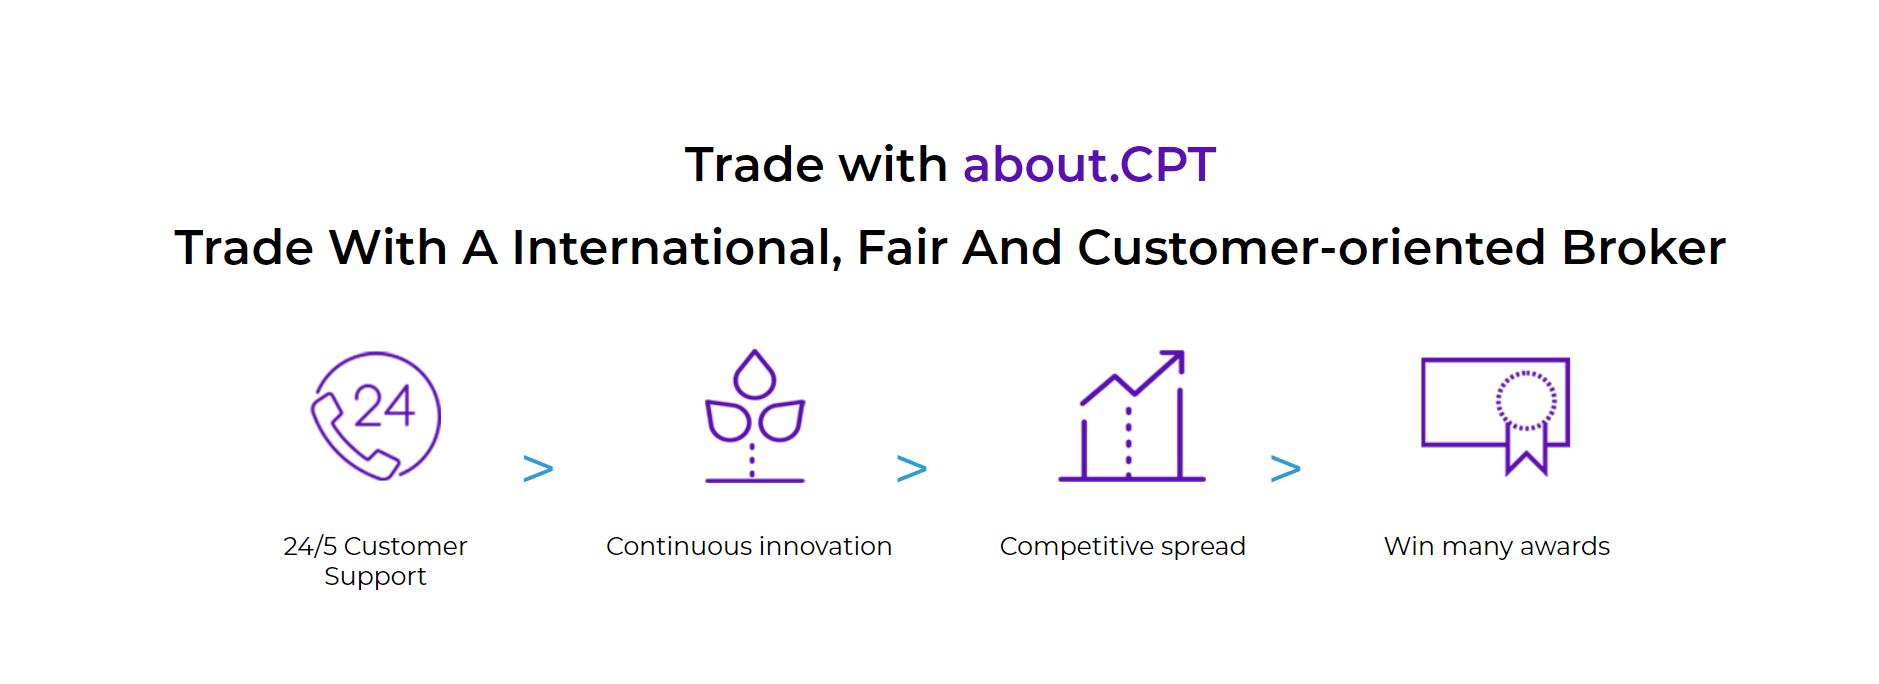 Can CPT Markets be trusted?